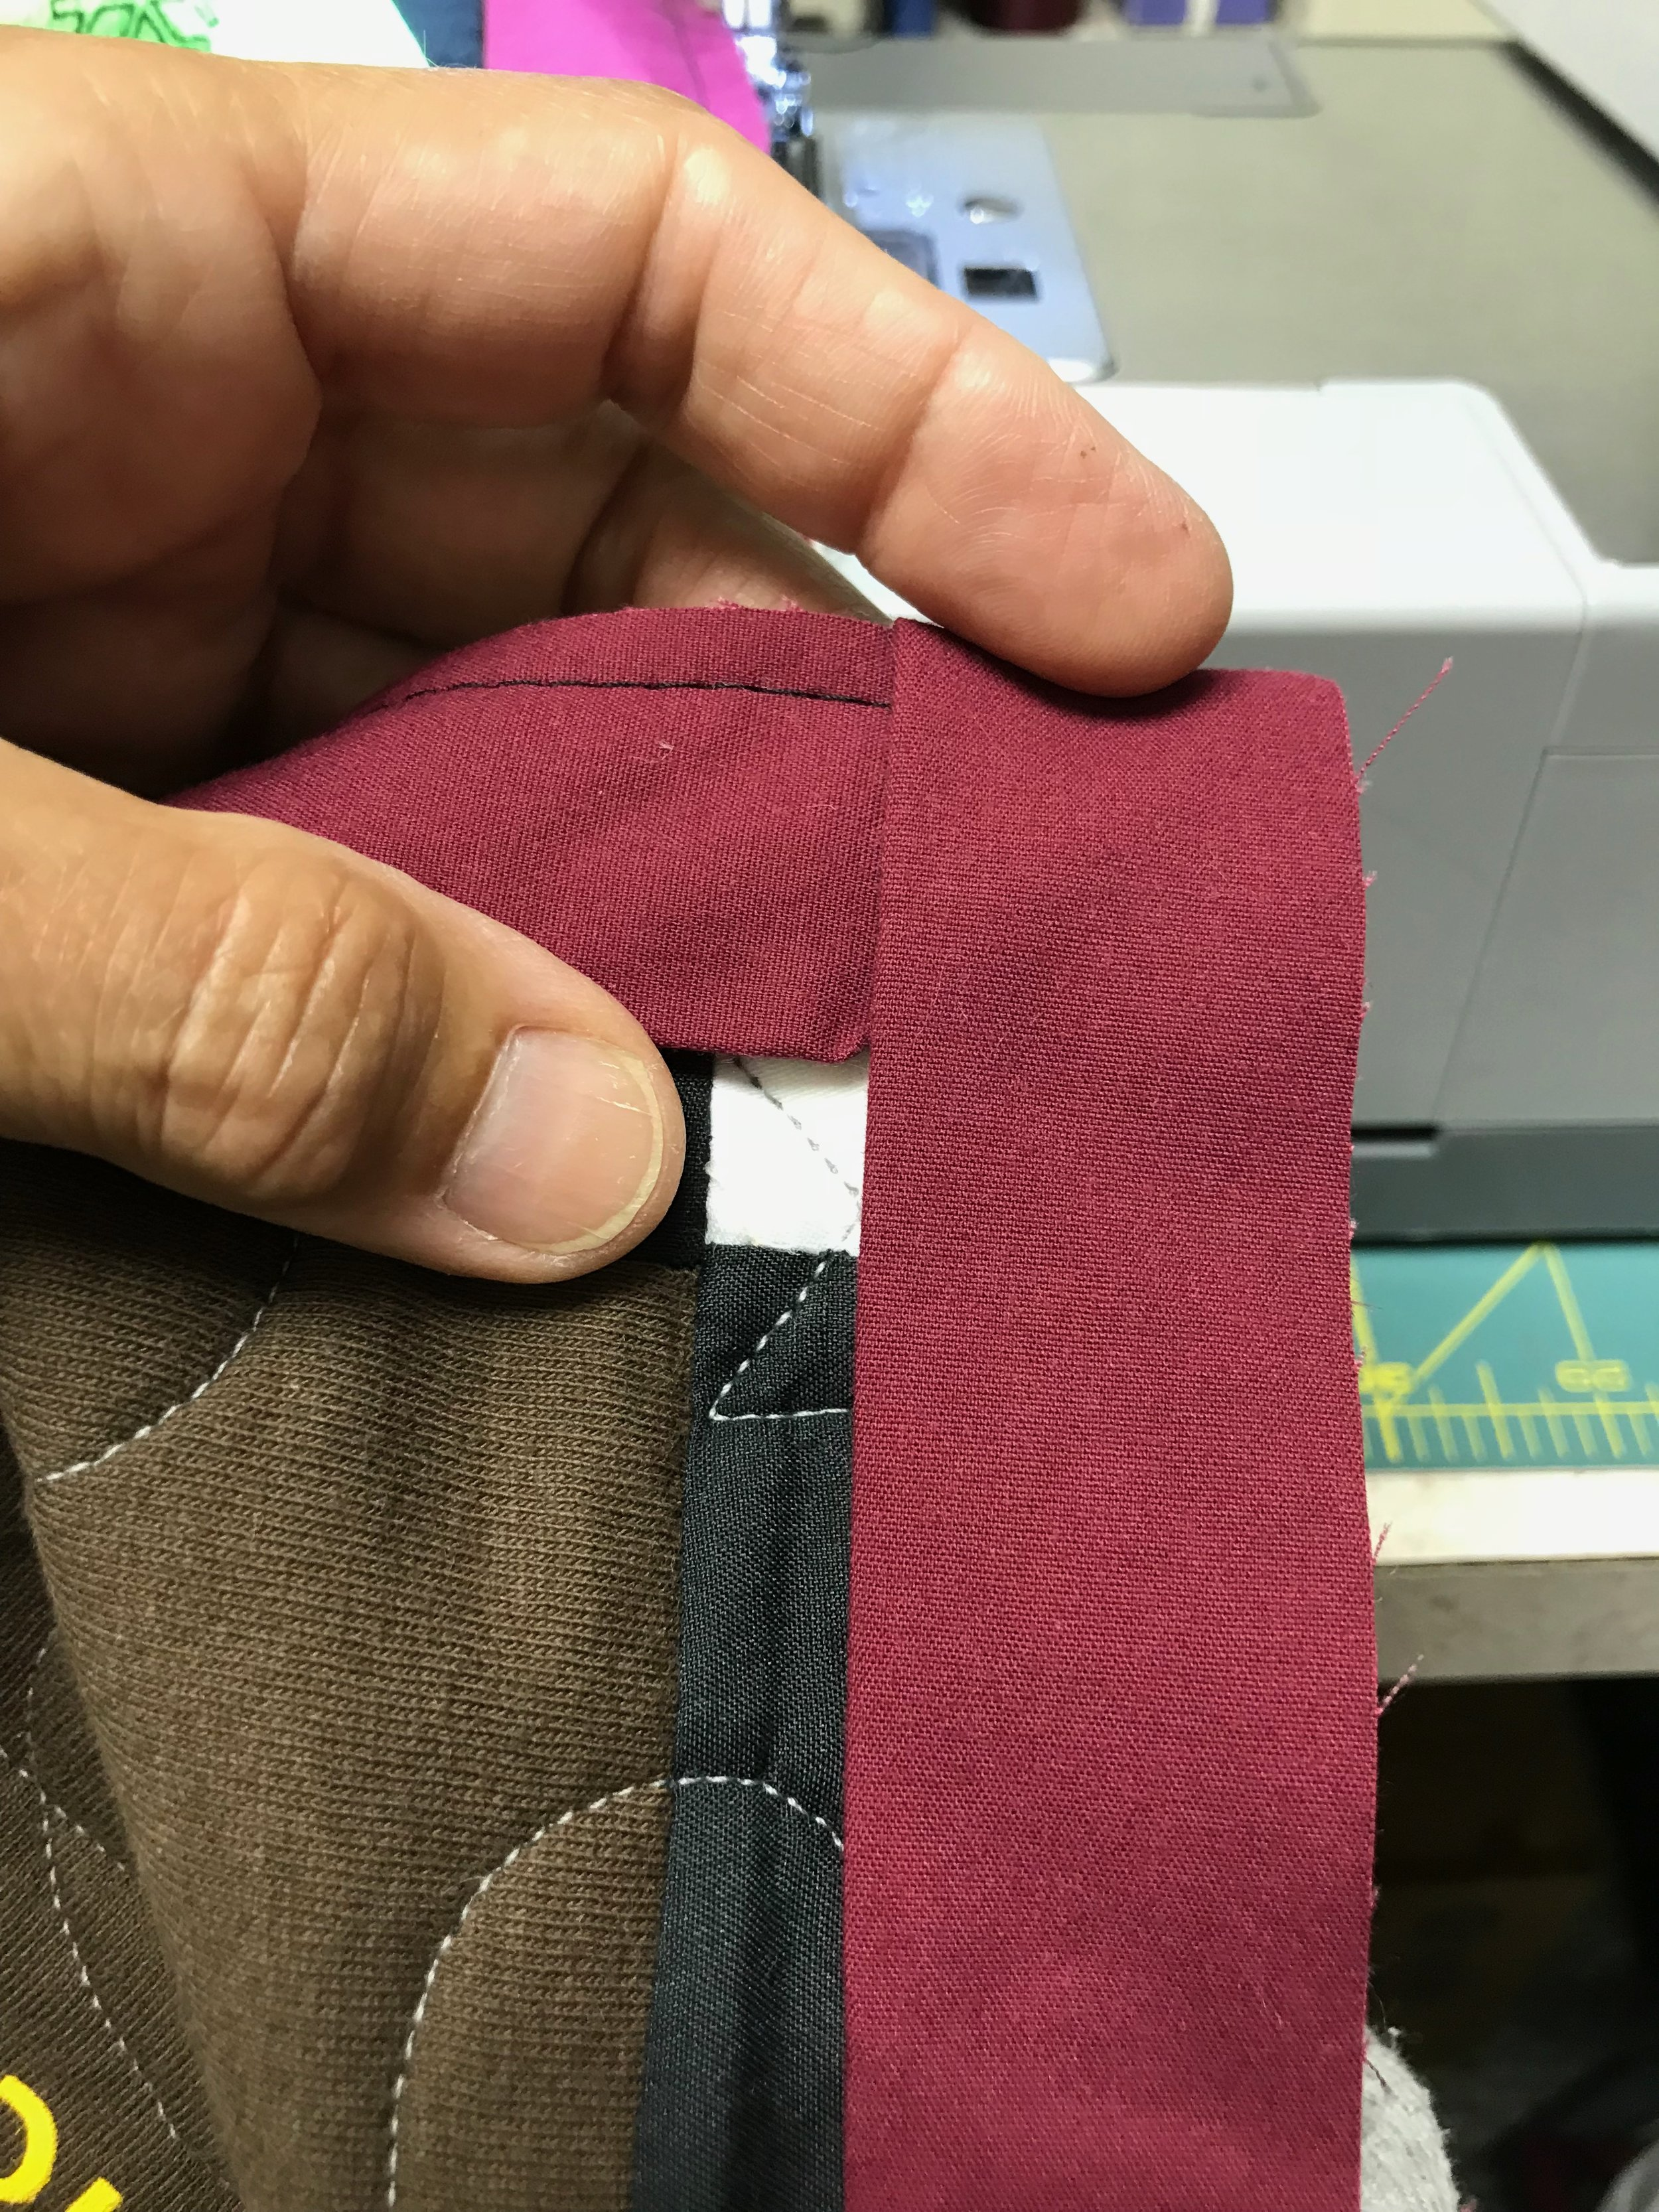 Fold the binding down so it aligns with the top and side edge